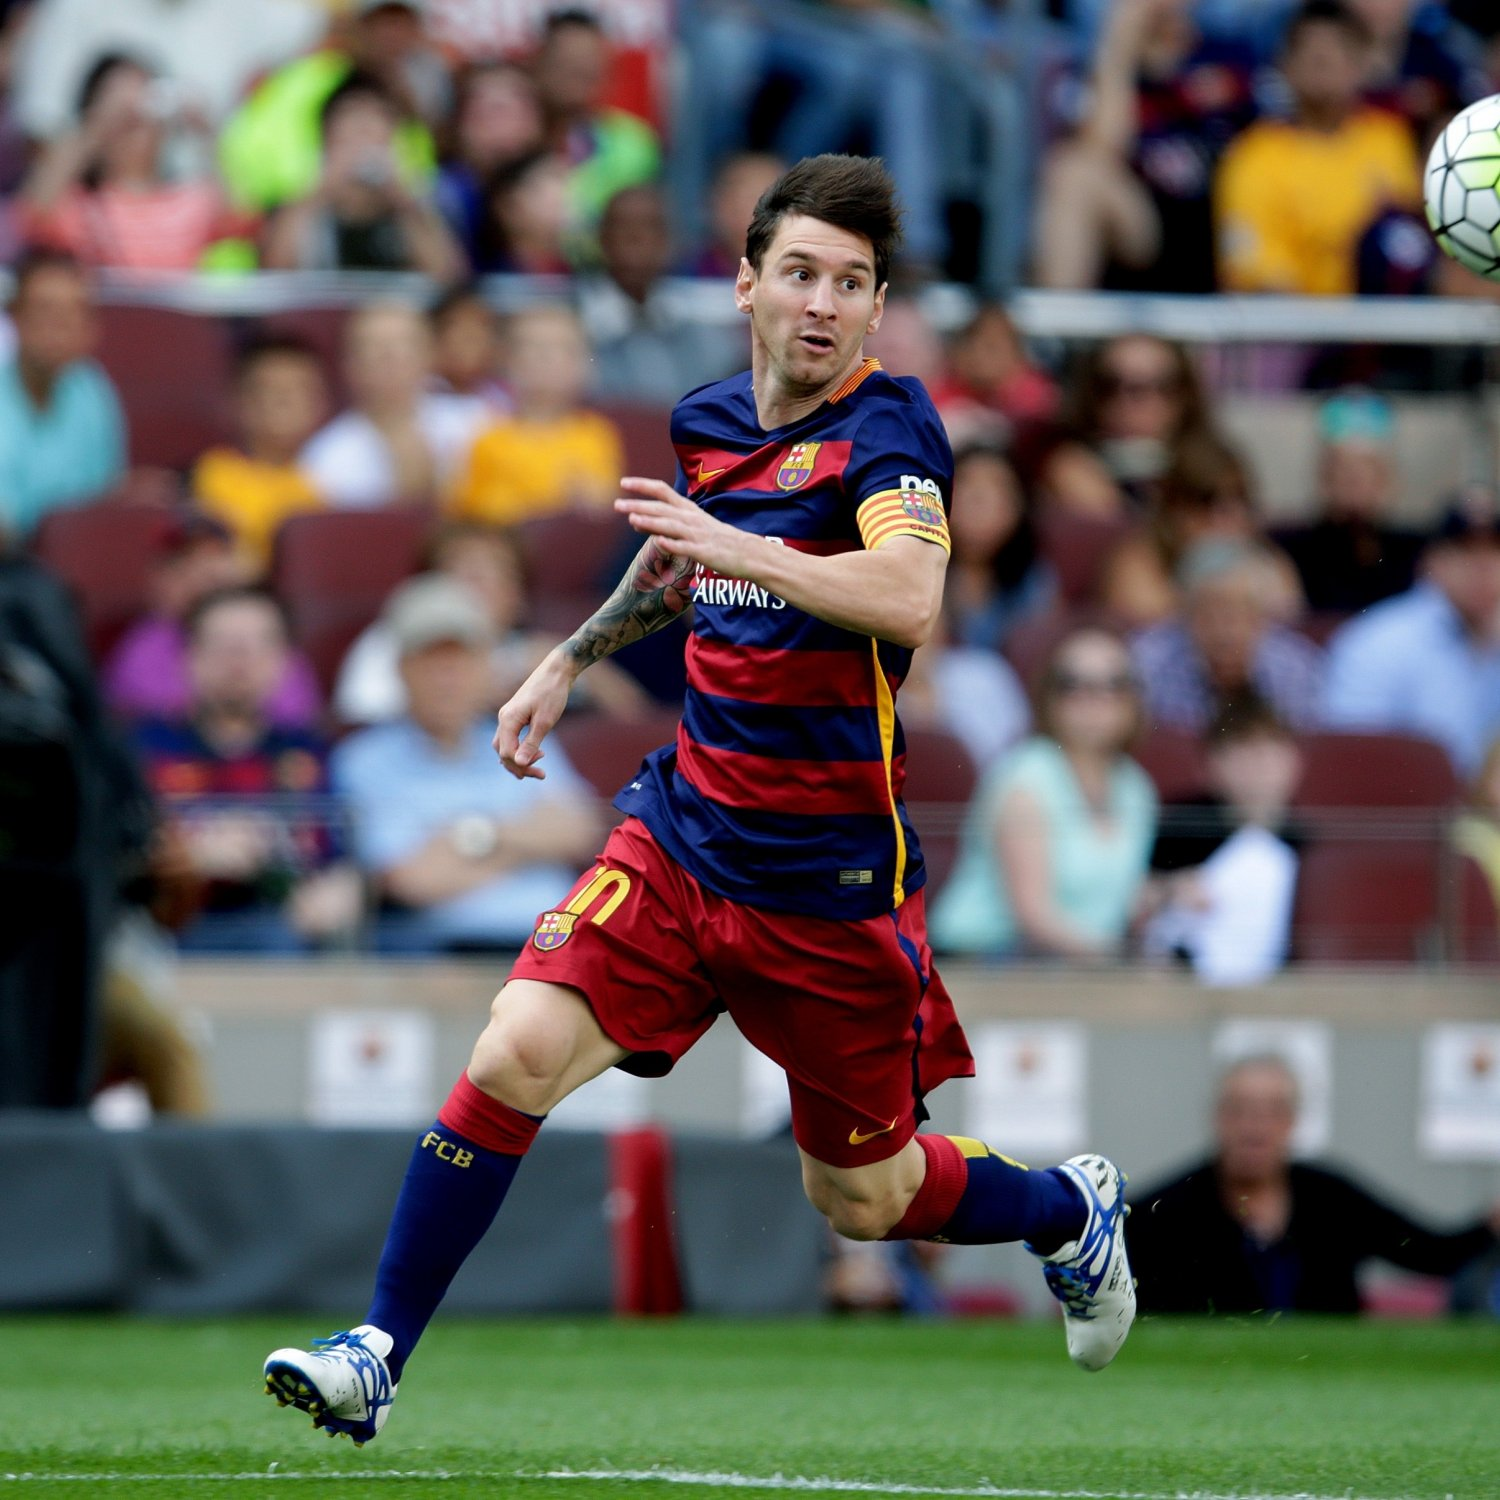 Lionel Messi A Look At The Barcelona Star S Sensational: Barcelona Transfer News: Lionel Messi Exit 'Impossible